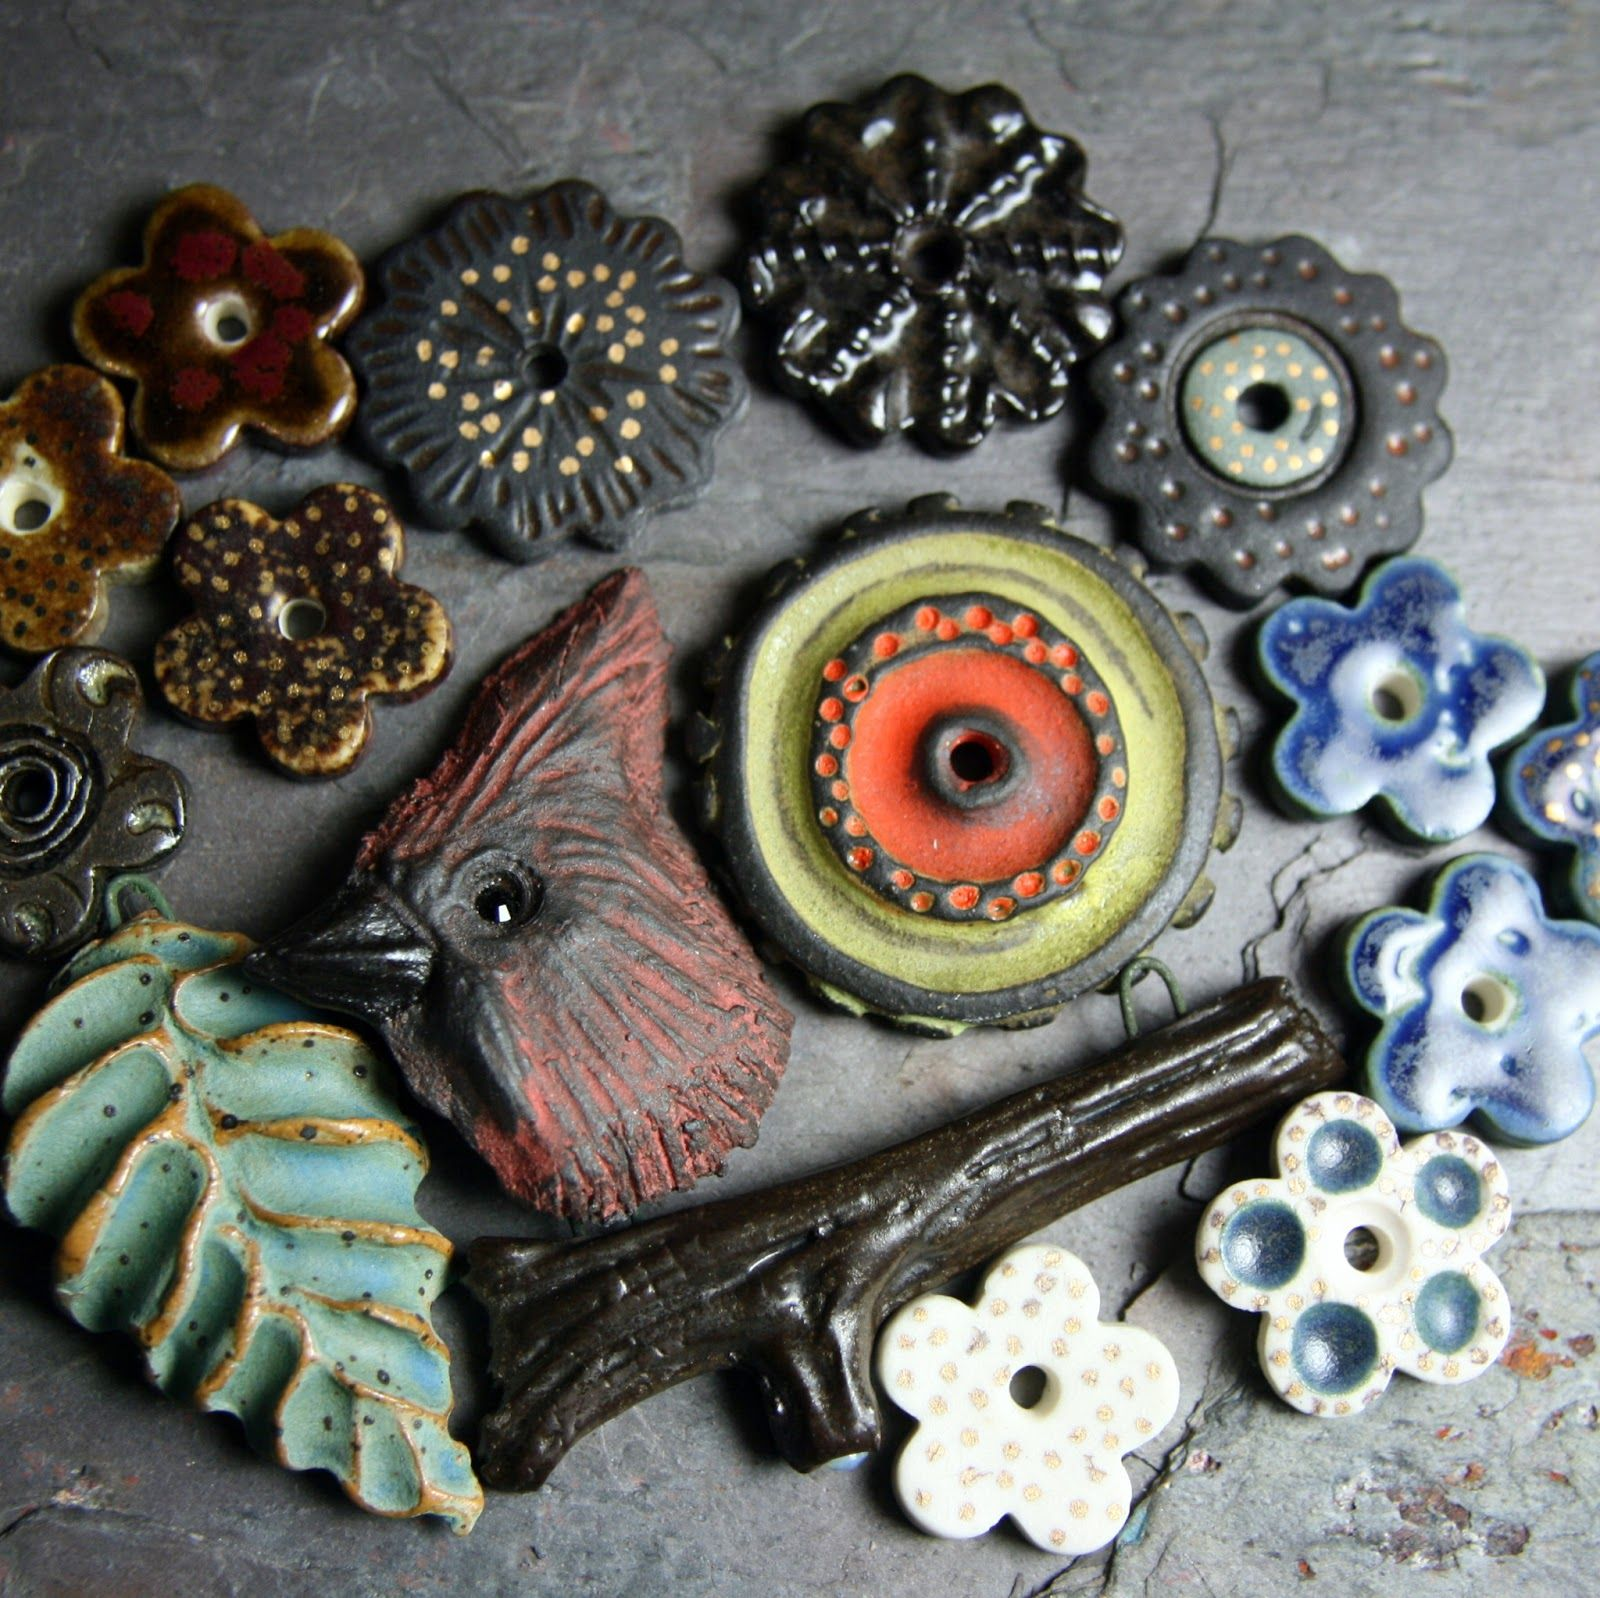 angi graham beads - Google Search